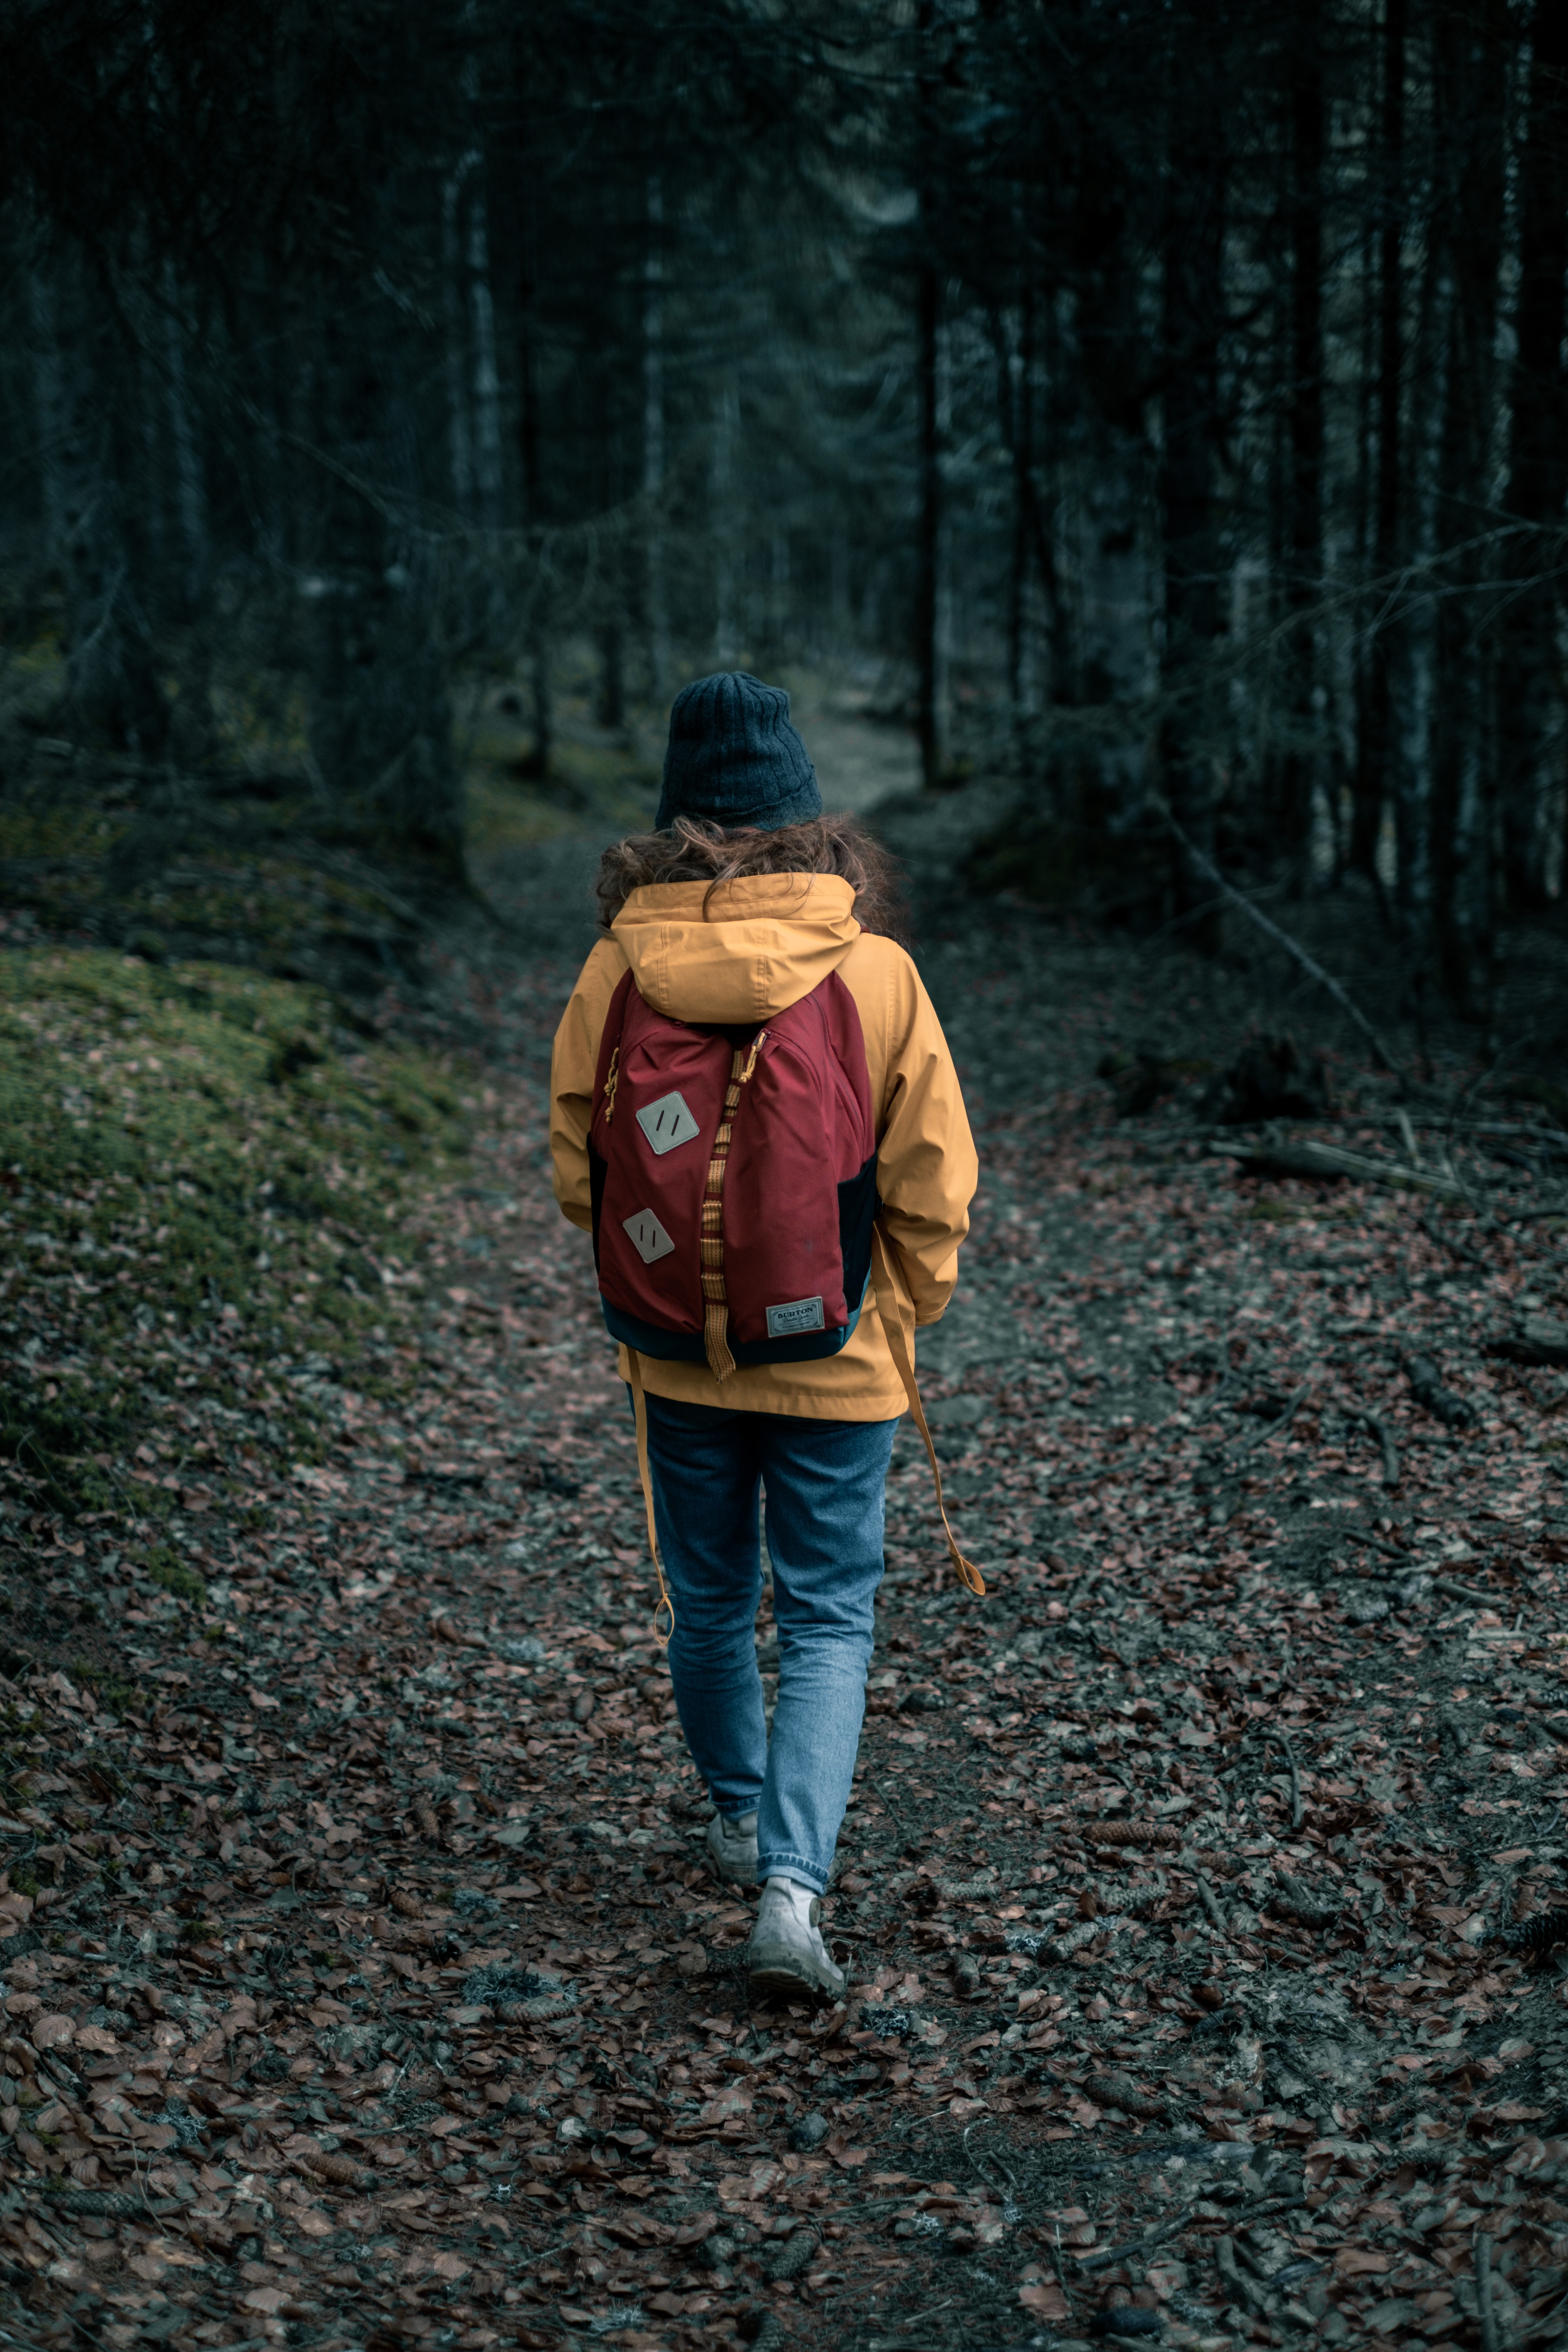 156746 download wallpaper Miscellanea, Miscellaneous, Human, Person, Forest, Loneliness, Nature, Stroll screensavers and pictures for free